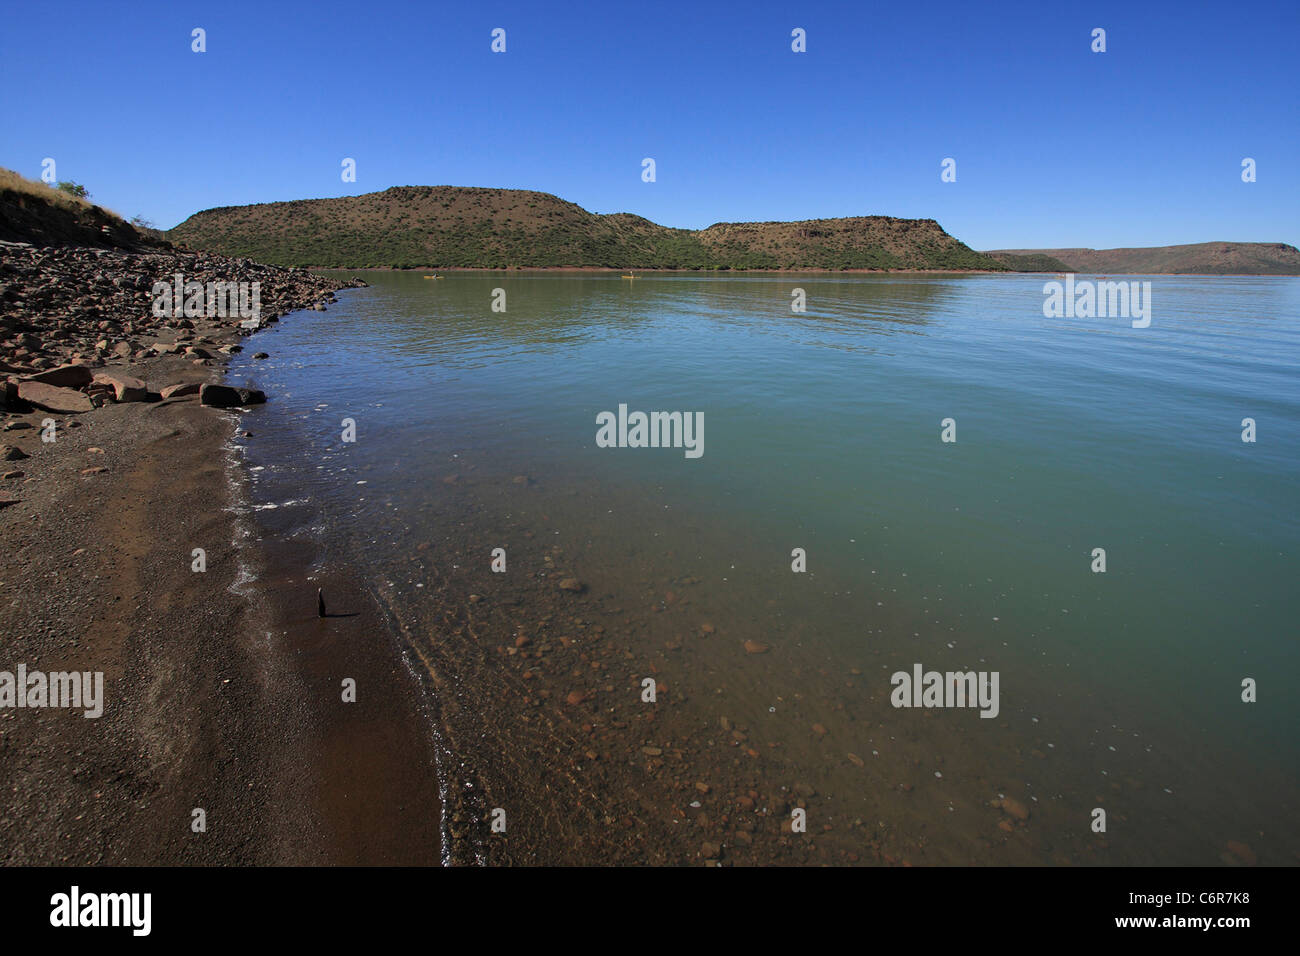 View from the shore over Van Der Kloof Dam - Stock Image